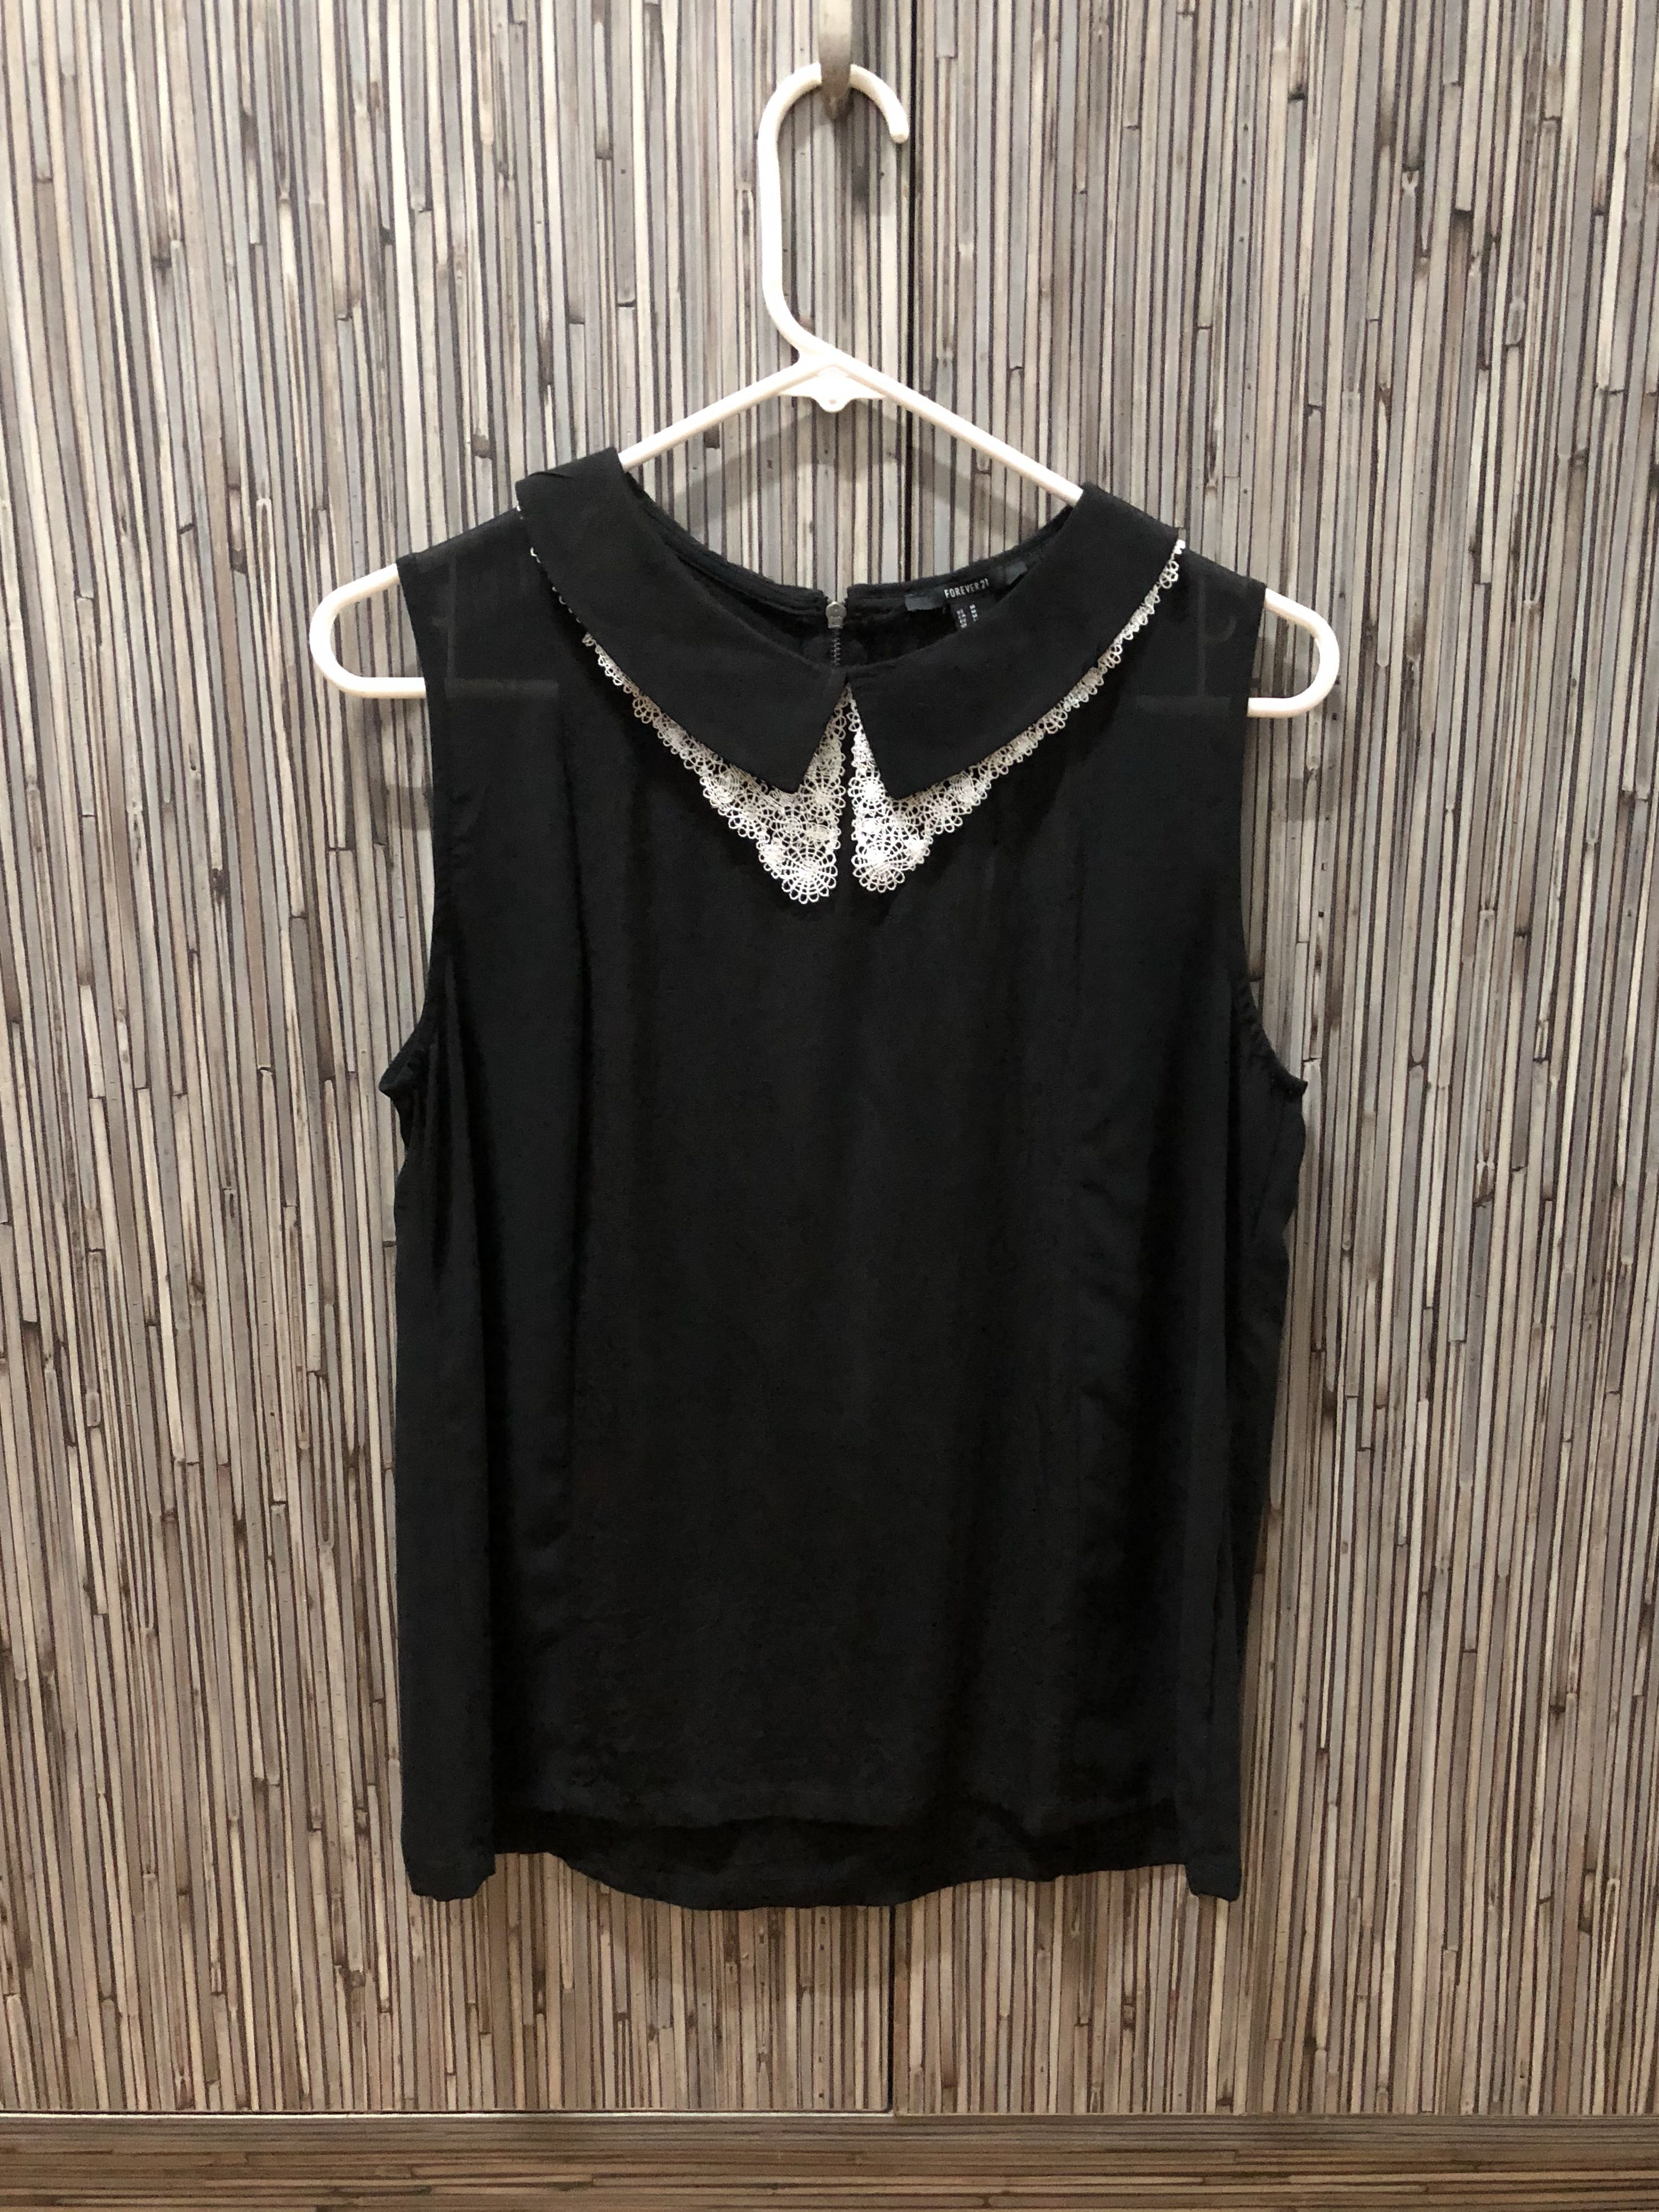 Forever 21 Black Top with Peter Pan Collar